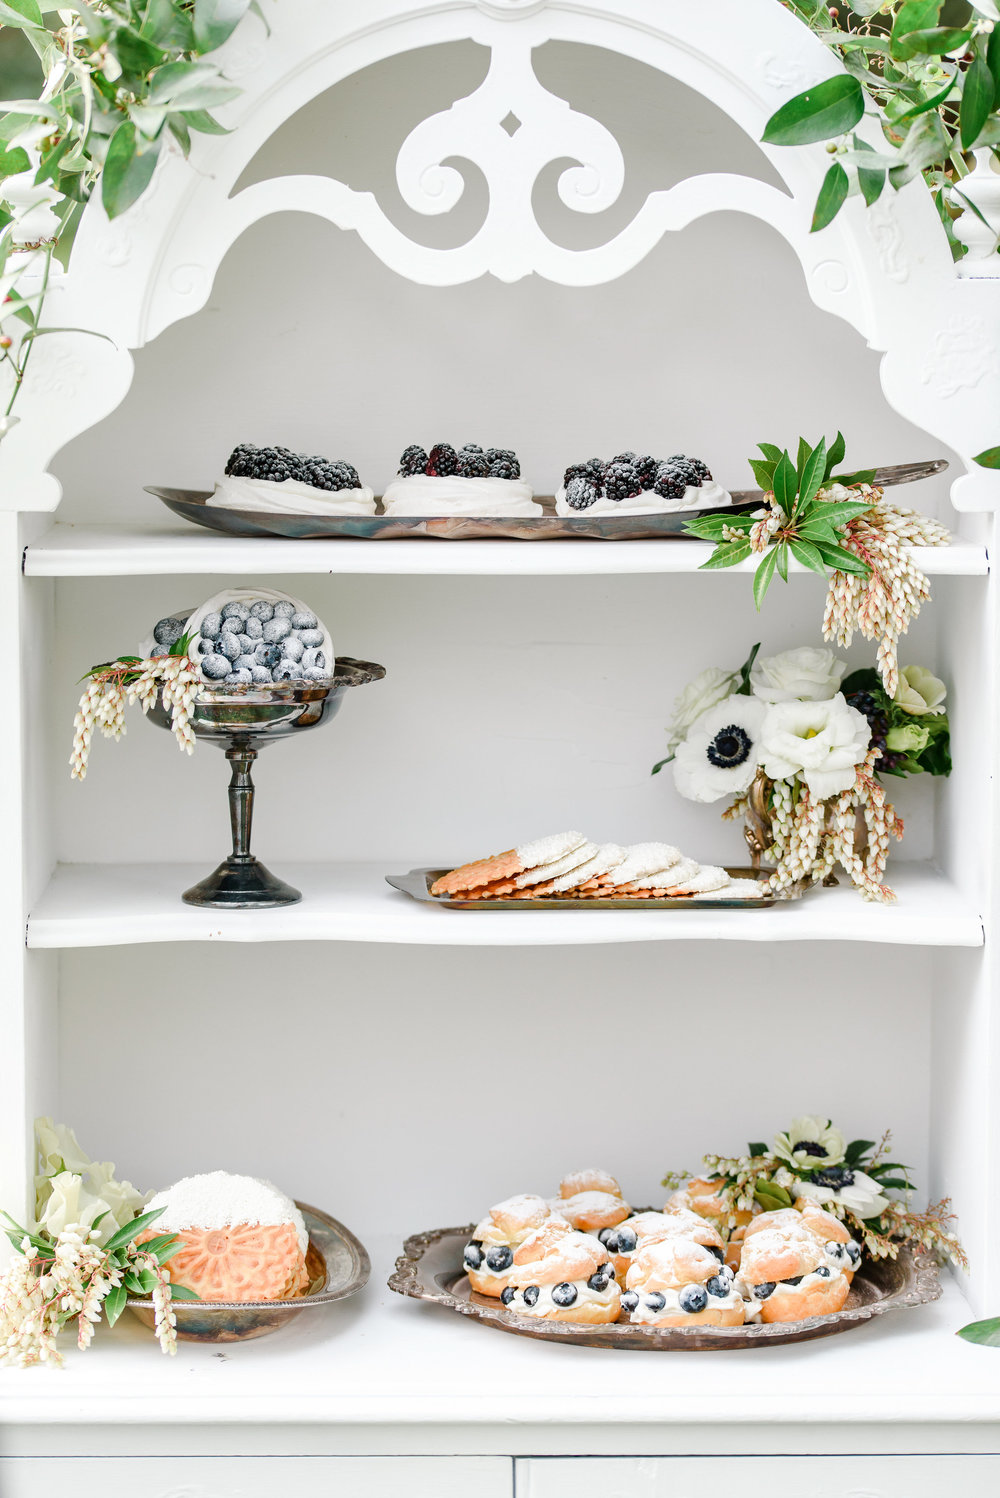 Garden Wedding Inspiration | Wedding Dessert Bar | Blueberry Desserts